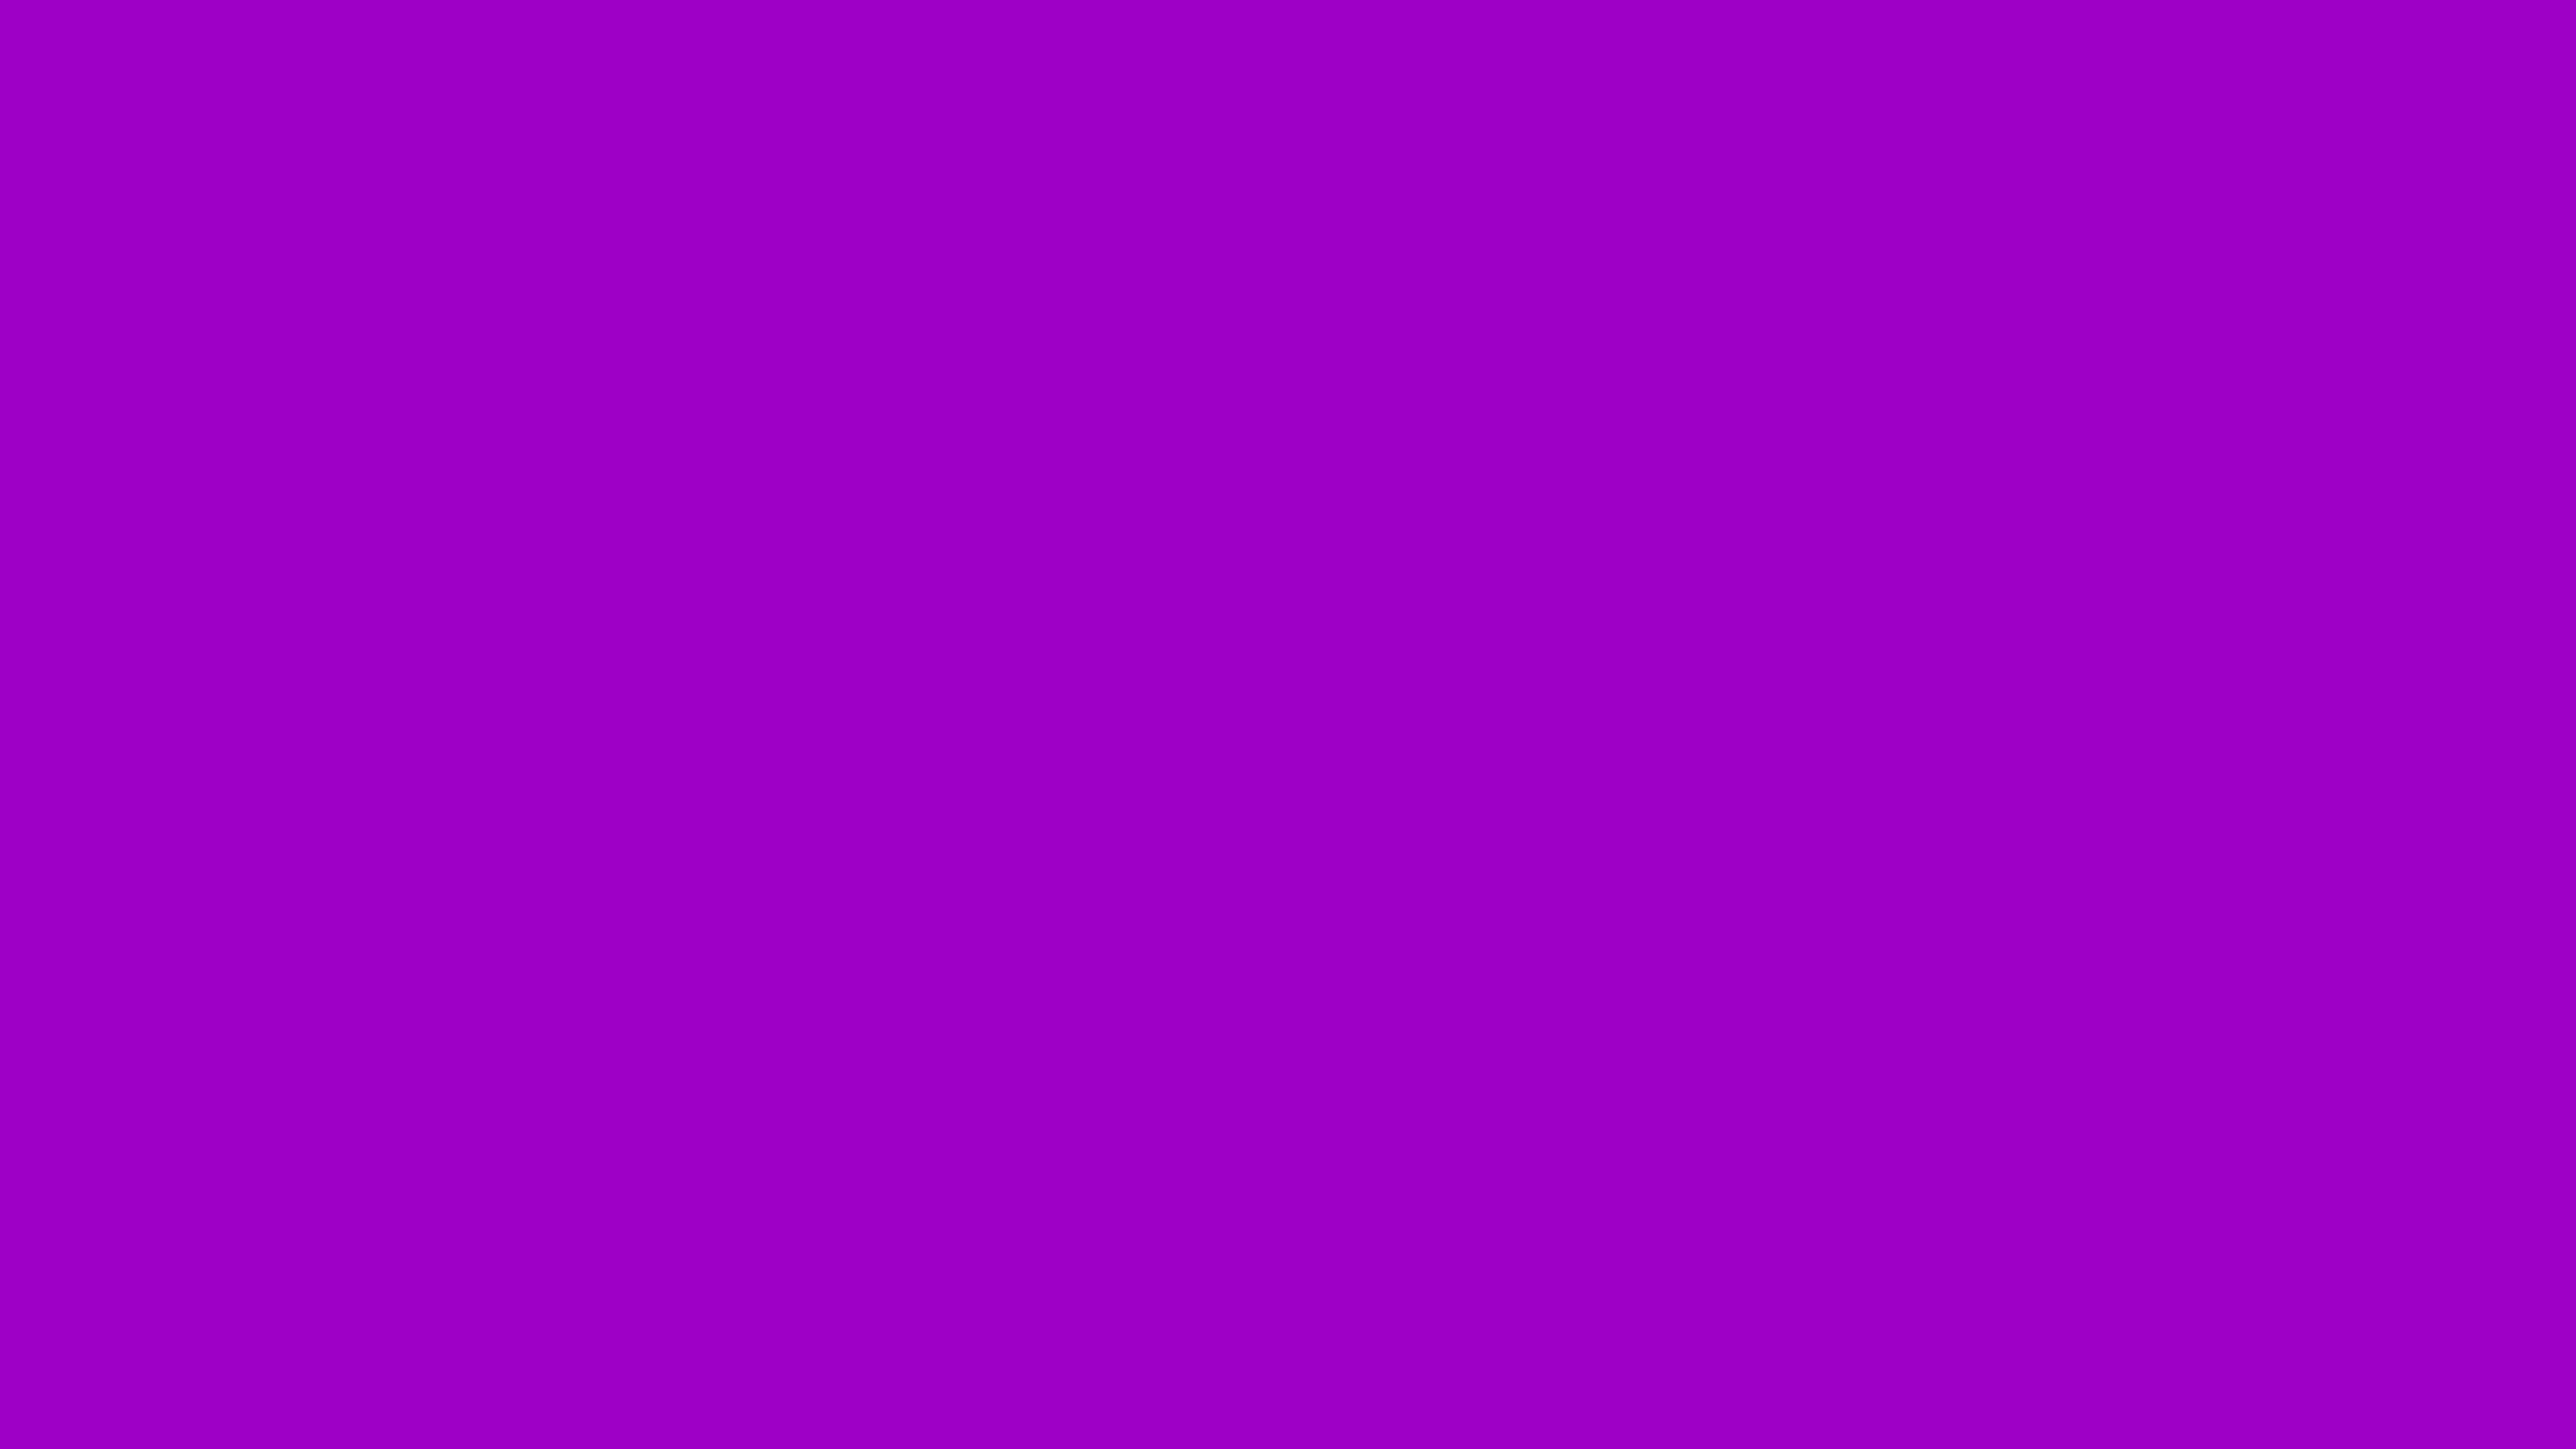 3840x2160 Purple Munsell Solid Color Background